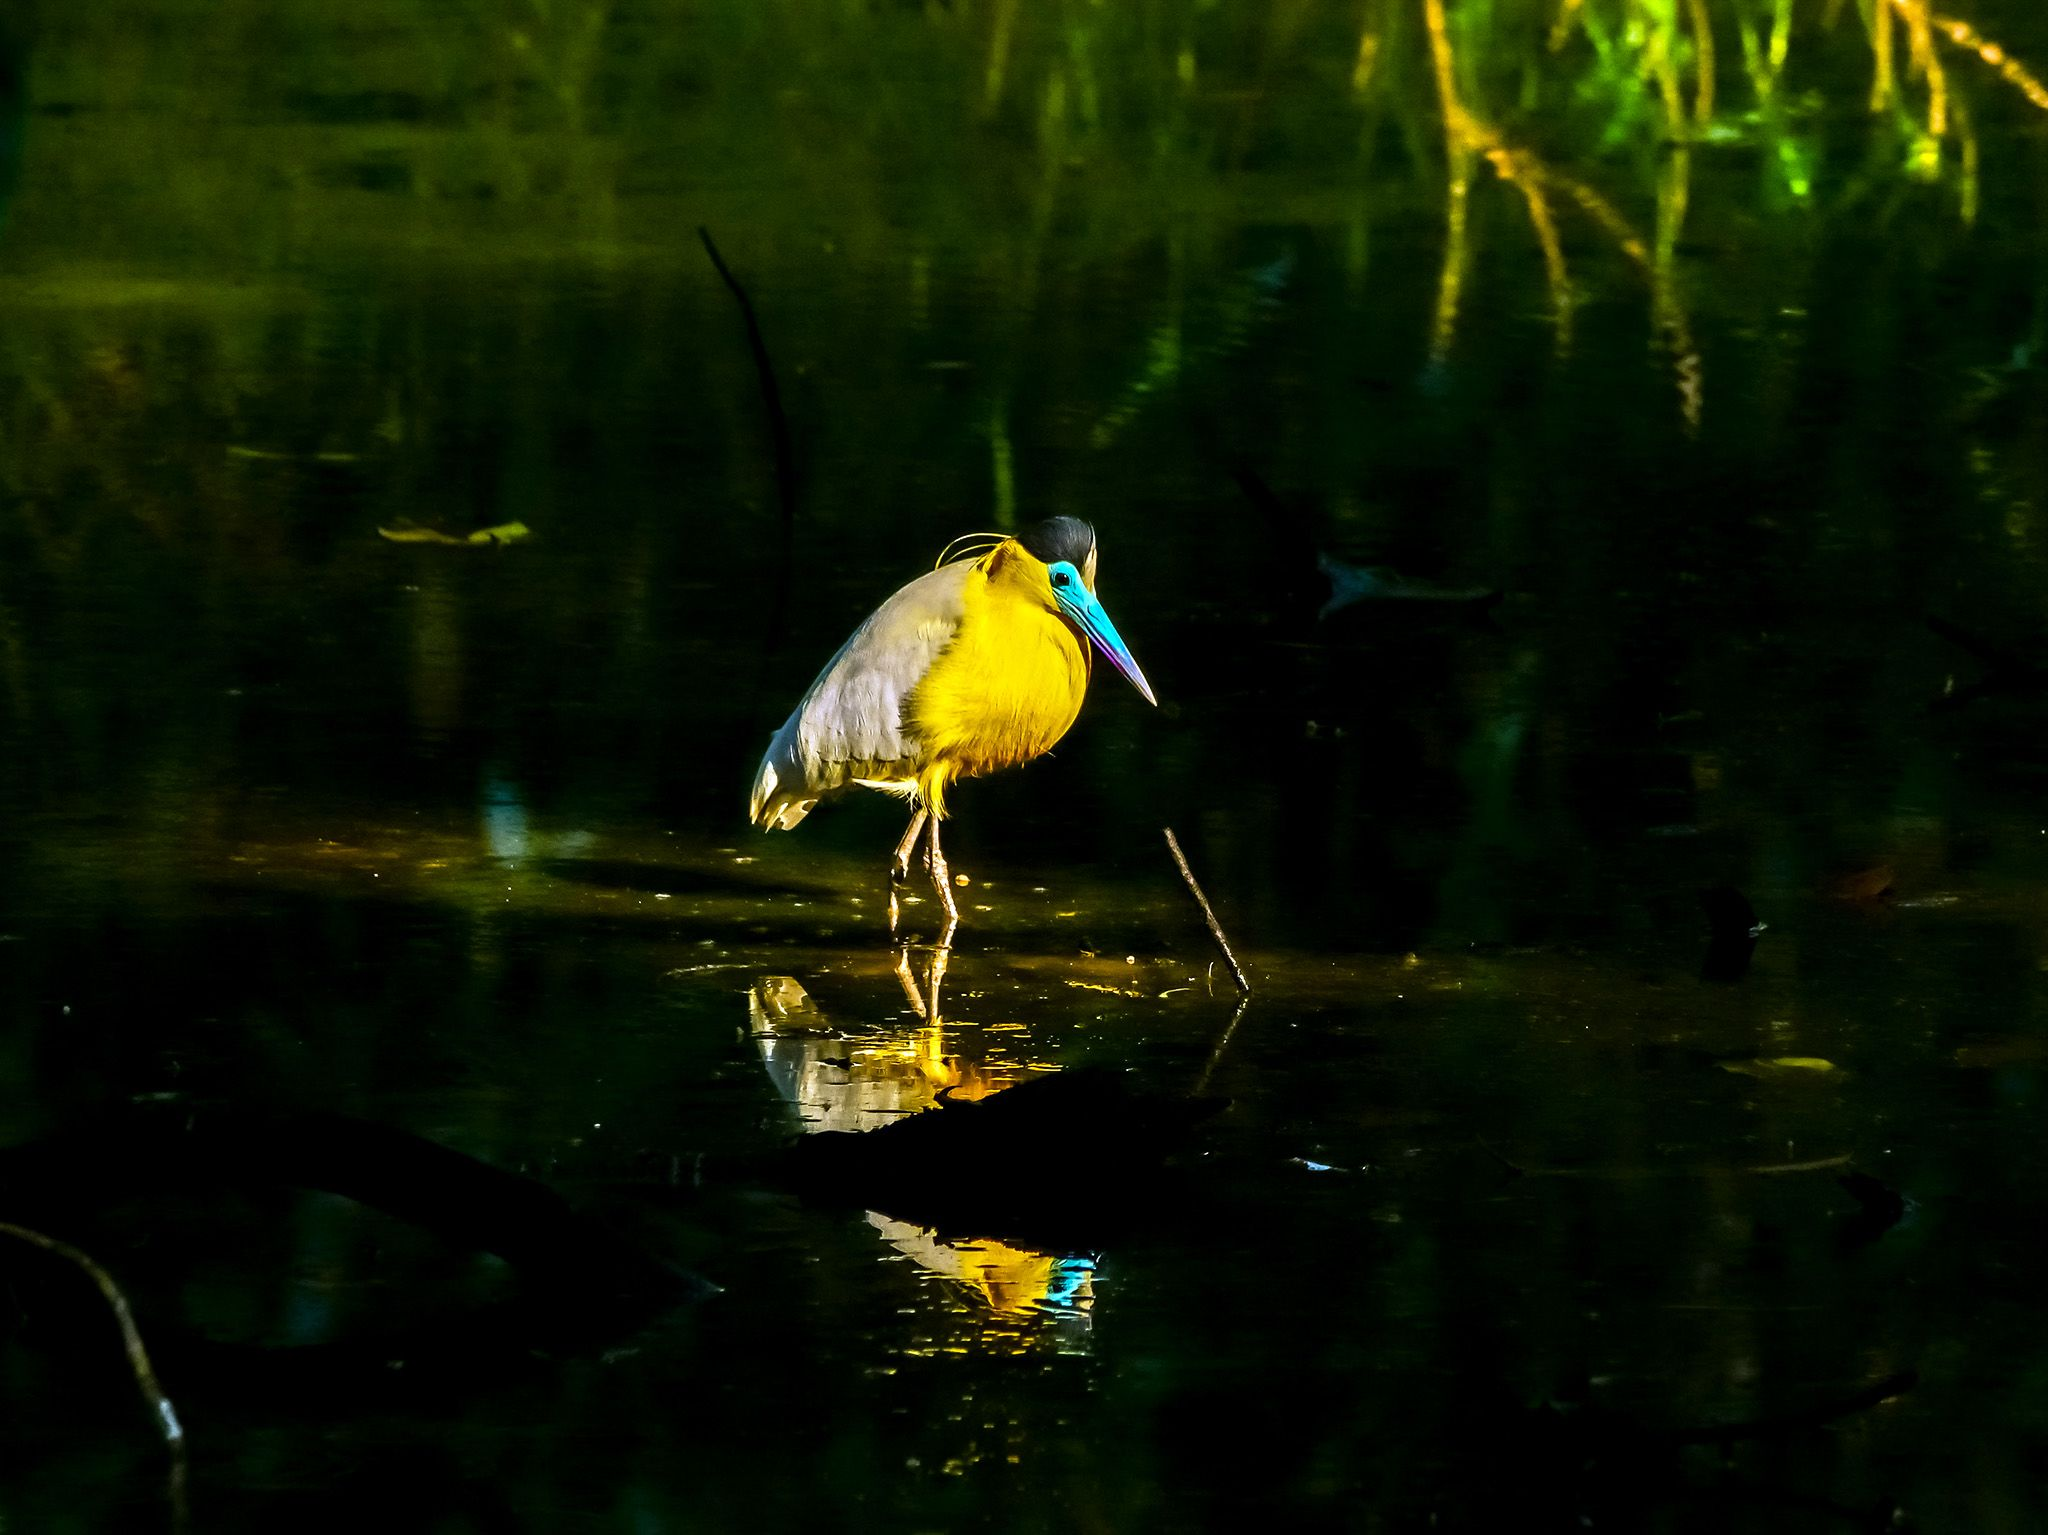 Capped heron in pond. This image is from Wild Peru: Andes Battleground. [Photo of the day - October 2020]